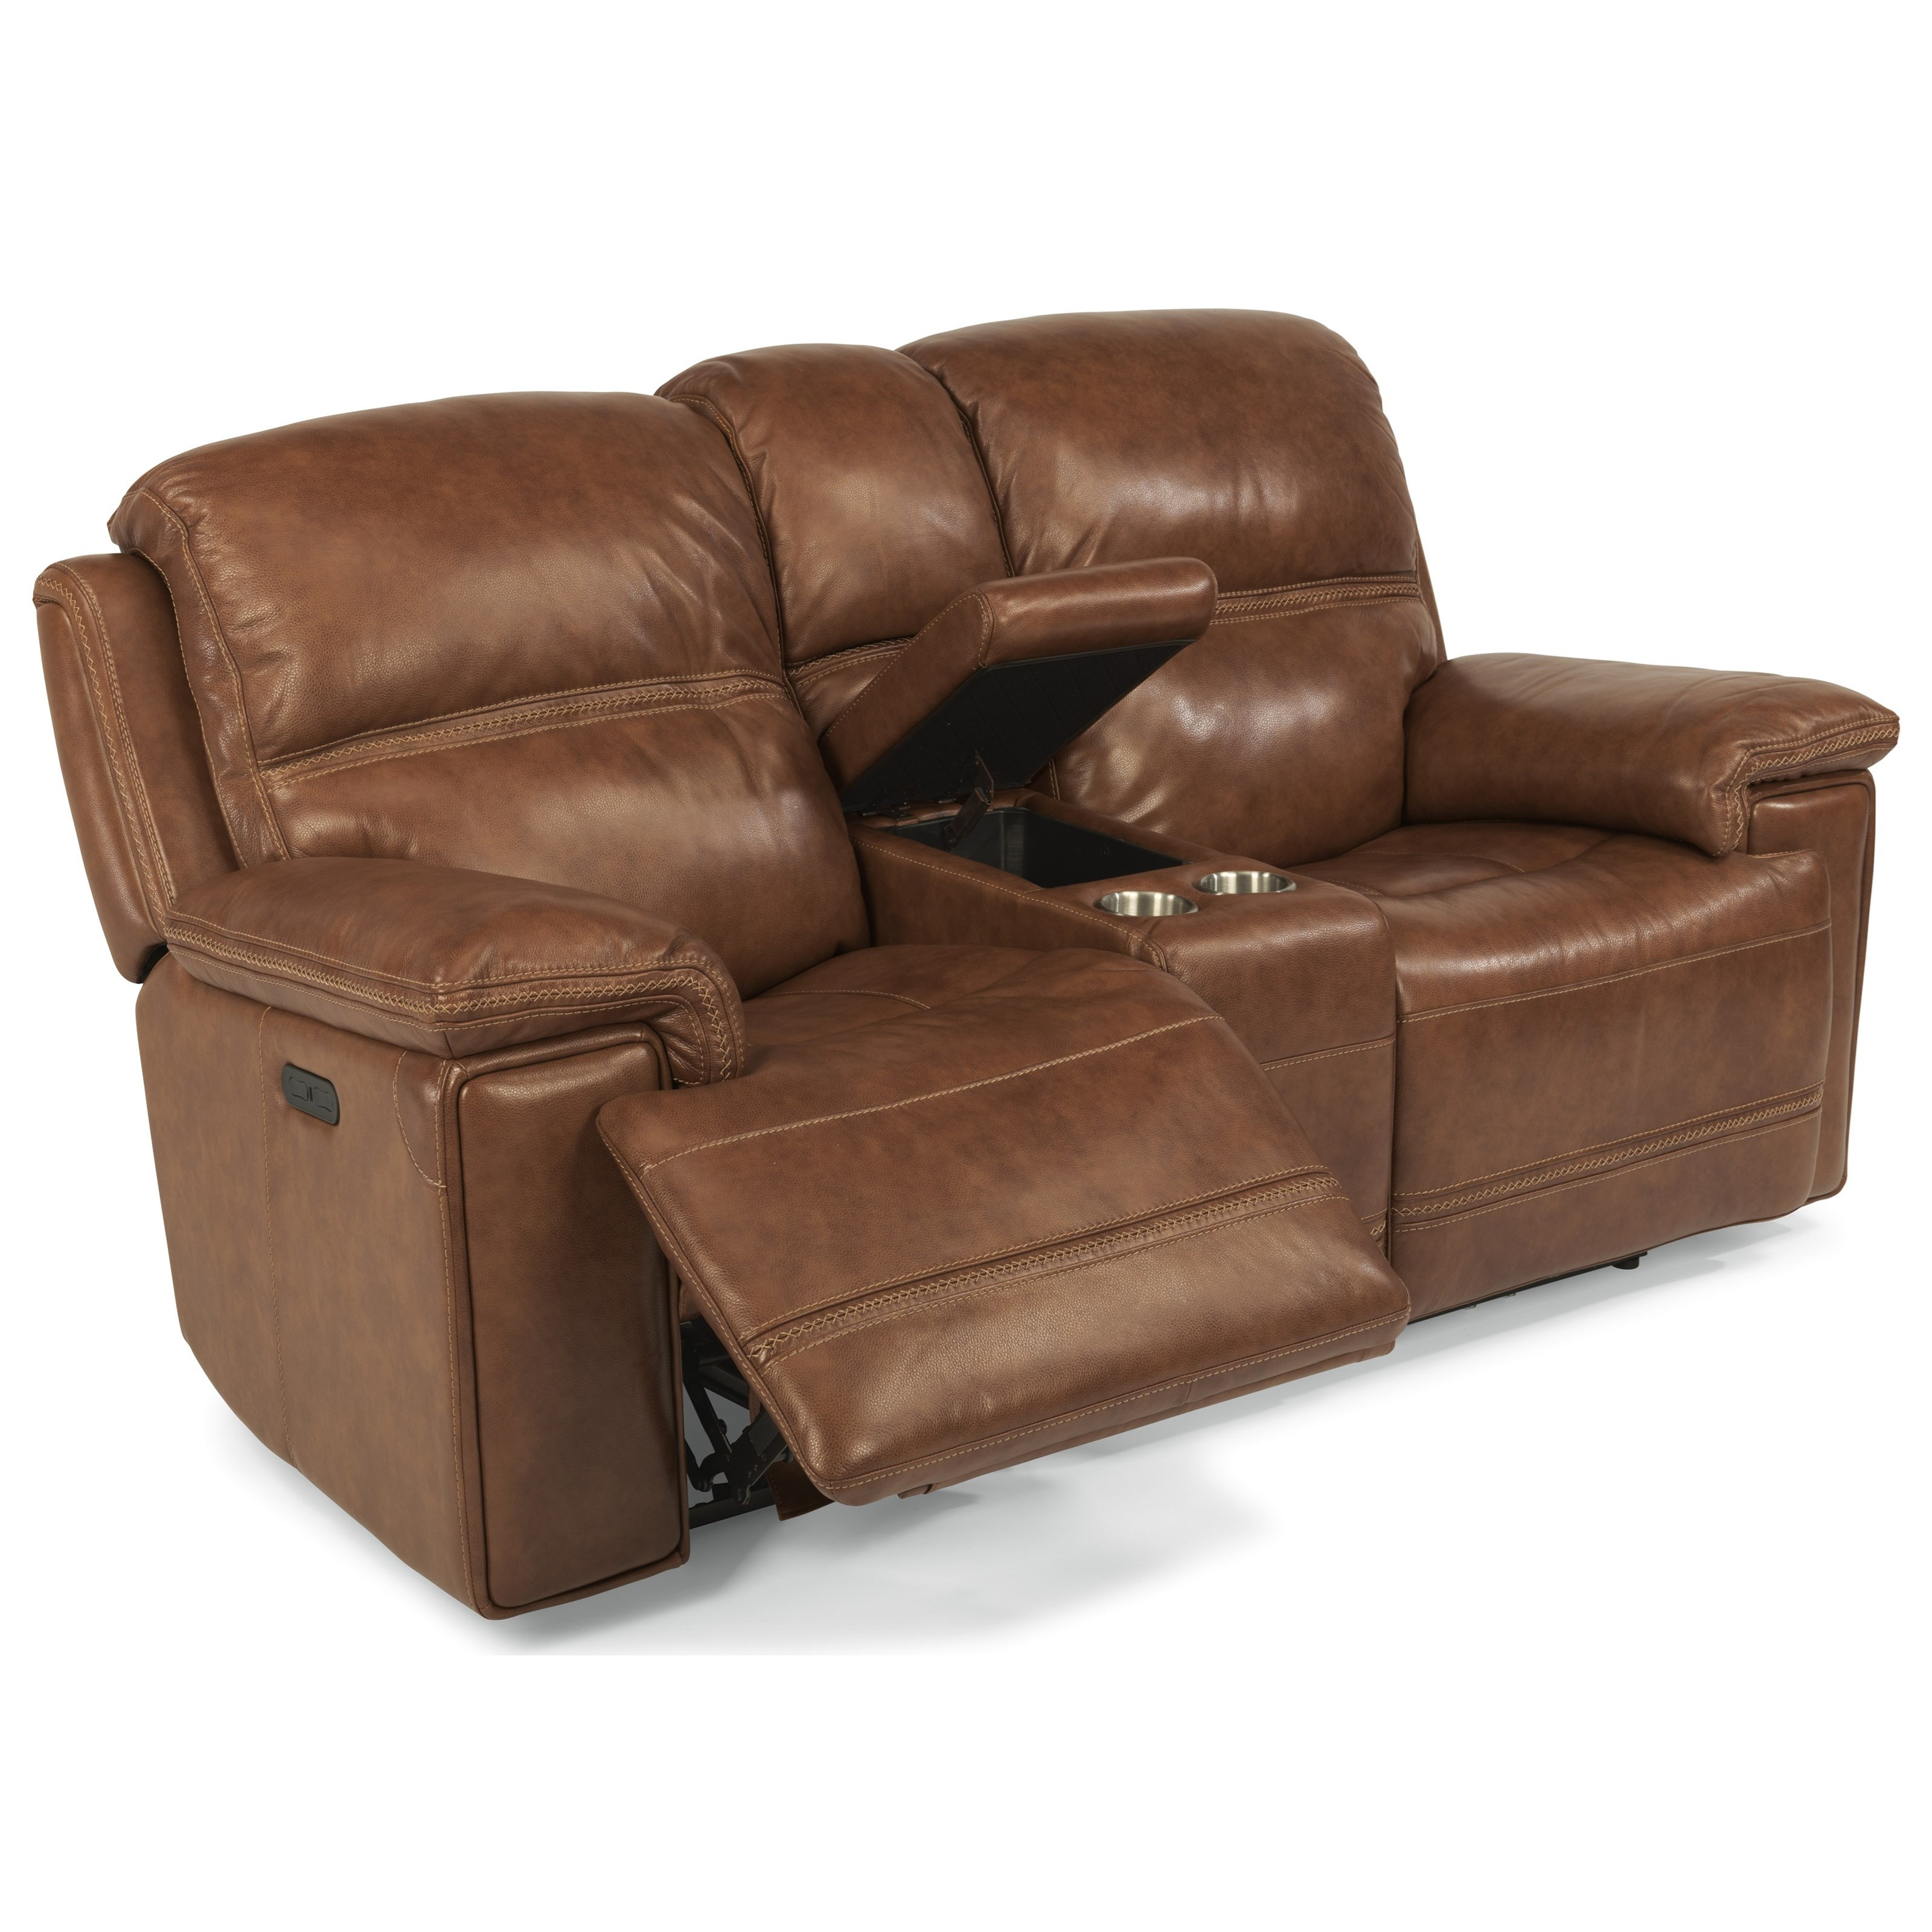 Flexsteel Sofa Locations: Flexsteel Latitudes-Fenwick Power Reclining Loveseat With